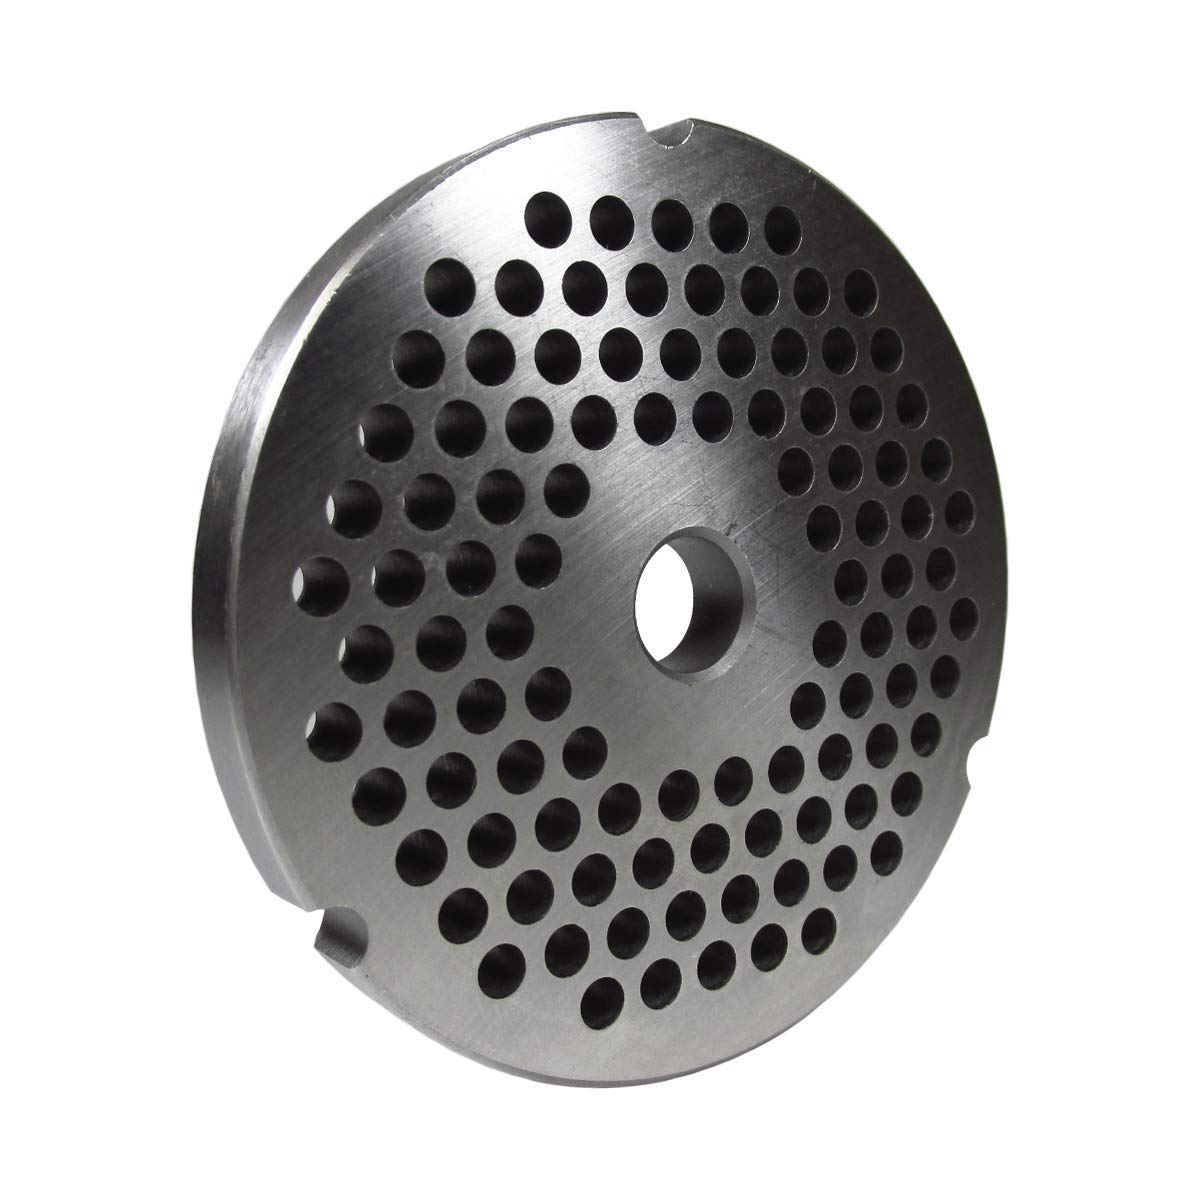 Grinder Plate for #22 Grinders Hobart Ultra-Cheap OFFicial shop Deals 3 Hole and with 16